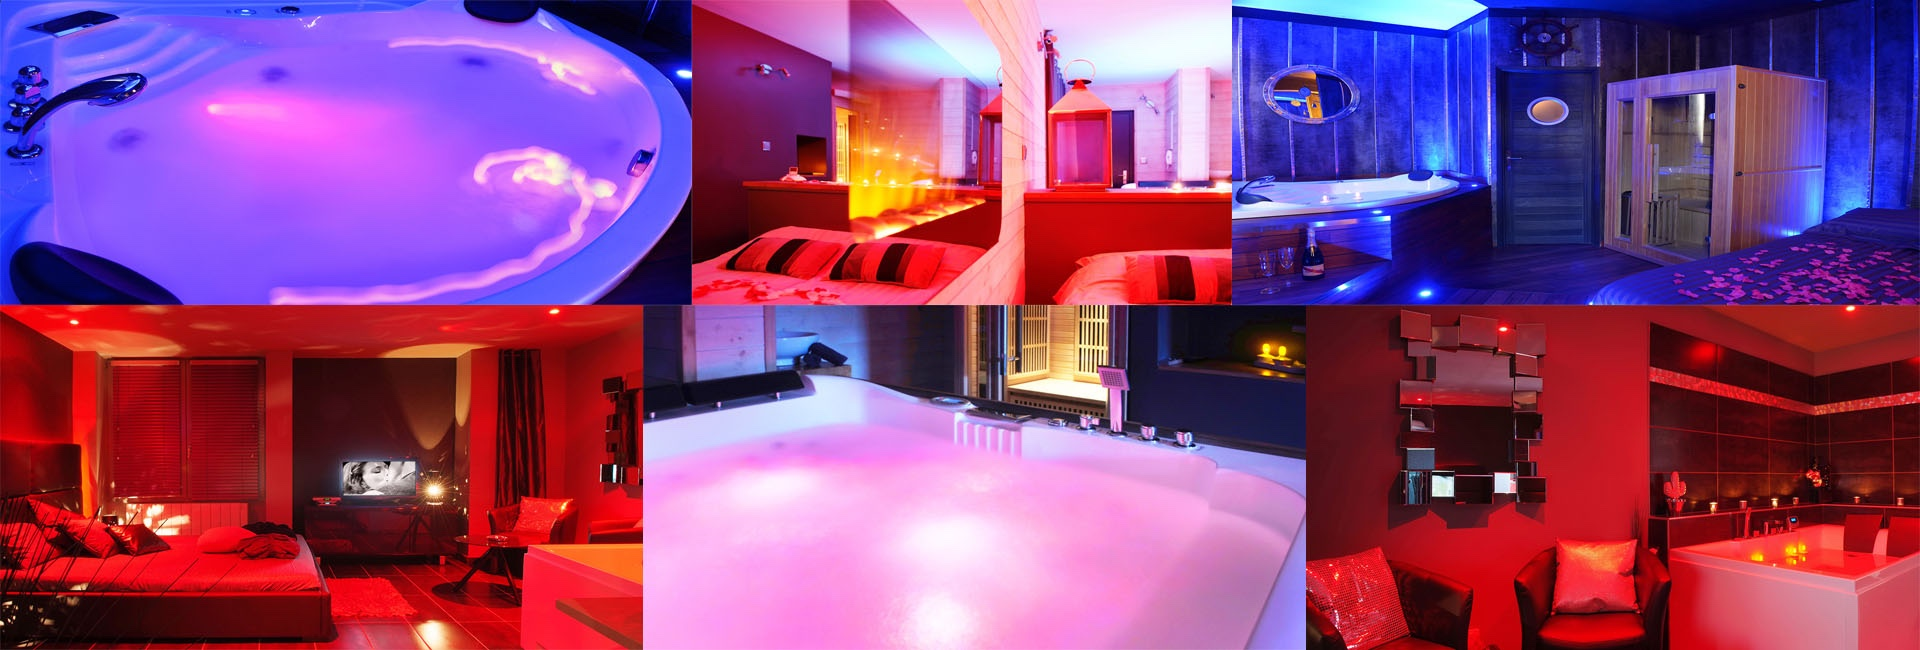 Dayuse-day-use-location-en-journee-jacuzzi-spa.jpg